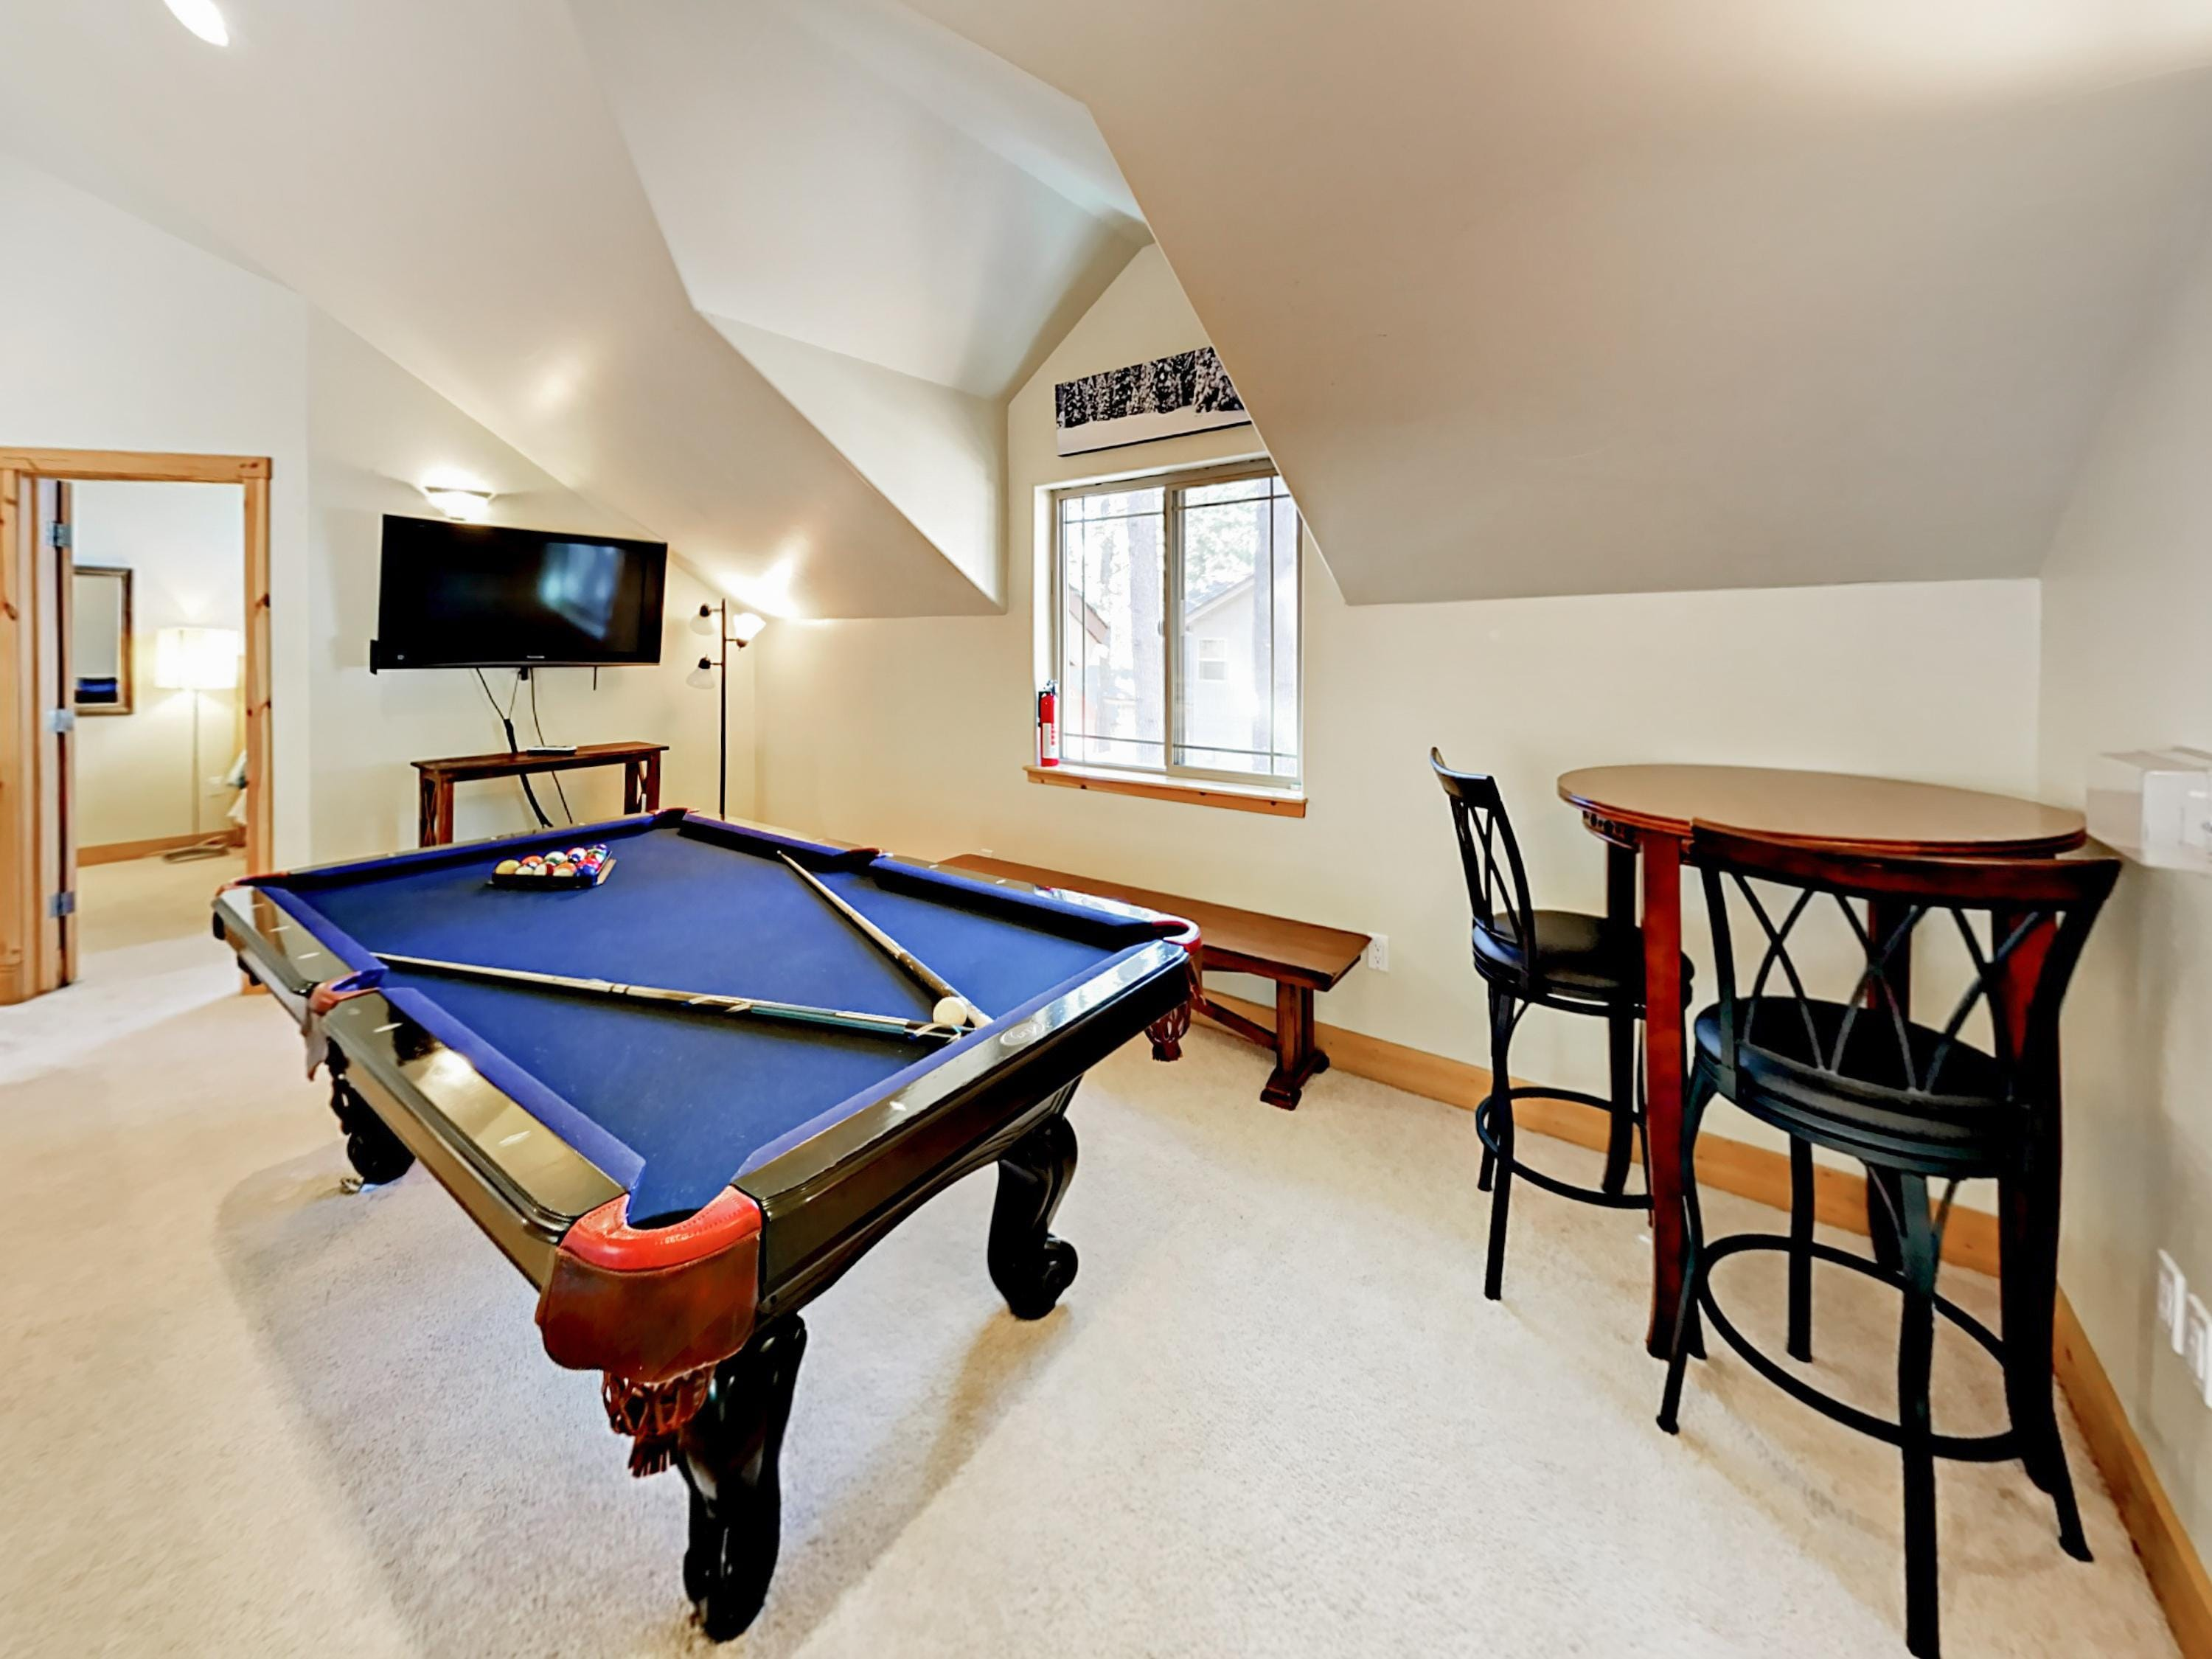 Test your billiards skills at the pool table in the game room.